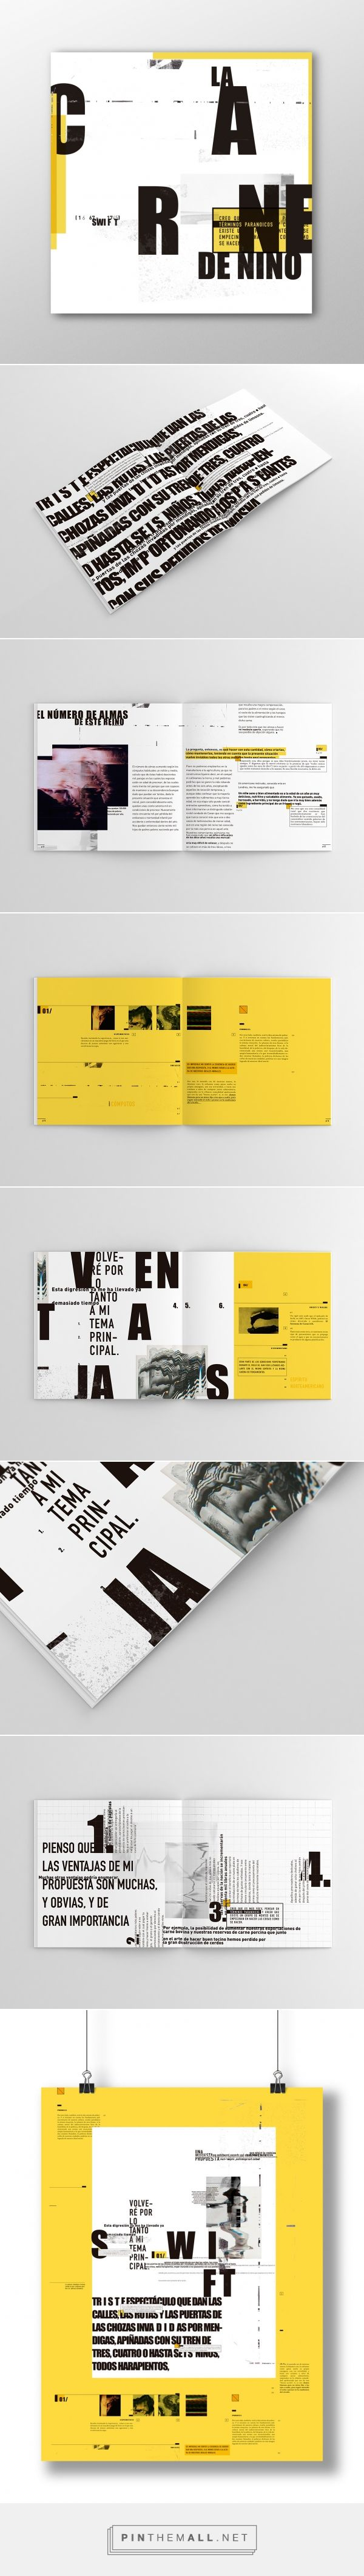 Editorial - Swift / Bertorello on Behance... - a grouped images picture - Pin Them All